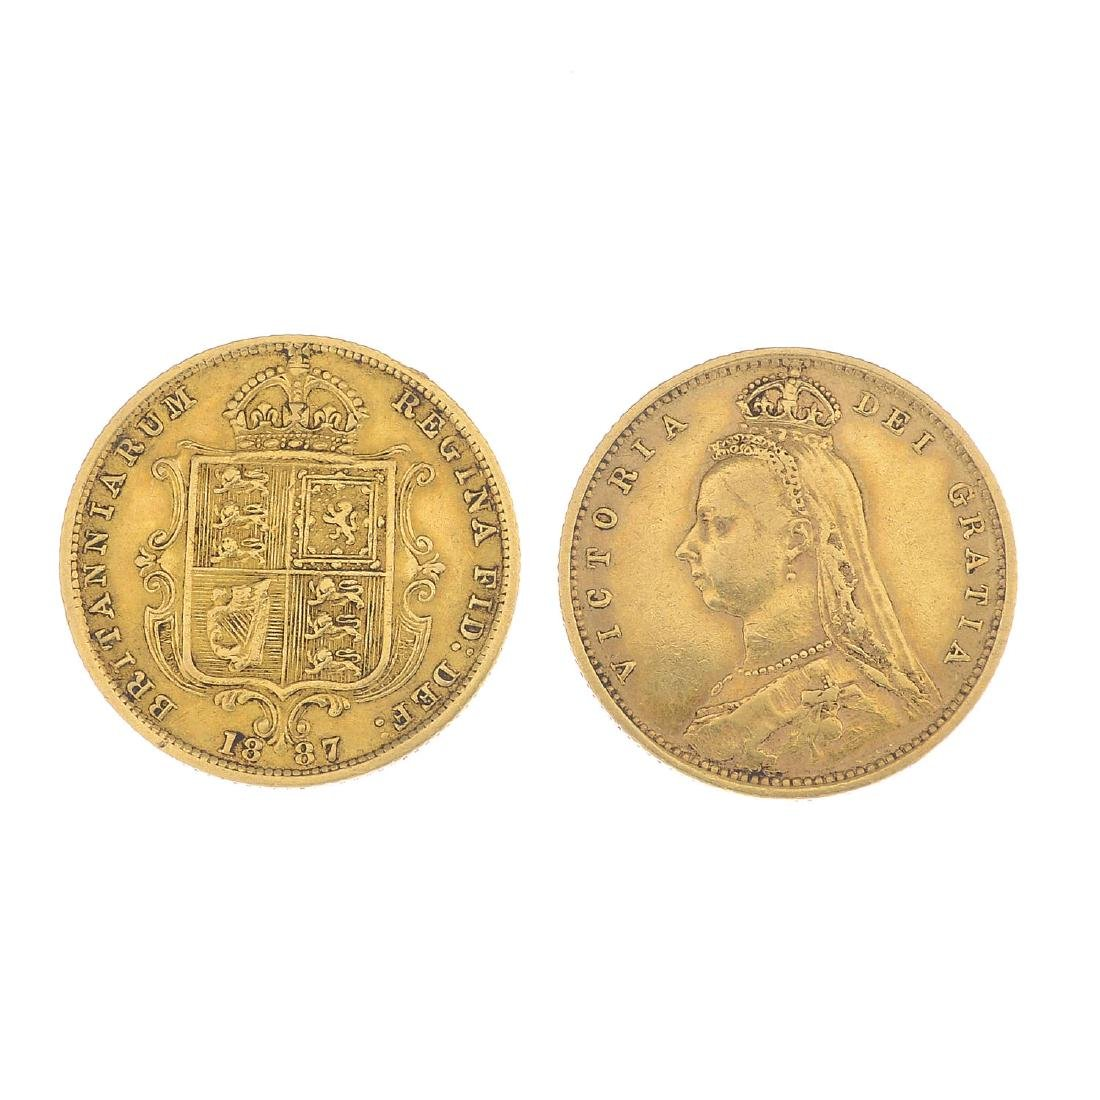 (22479) Two half sovereign coins. Dated 1887 and 1892.